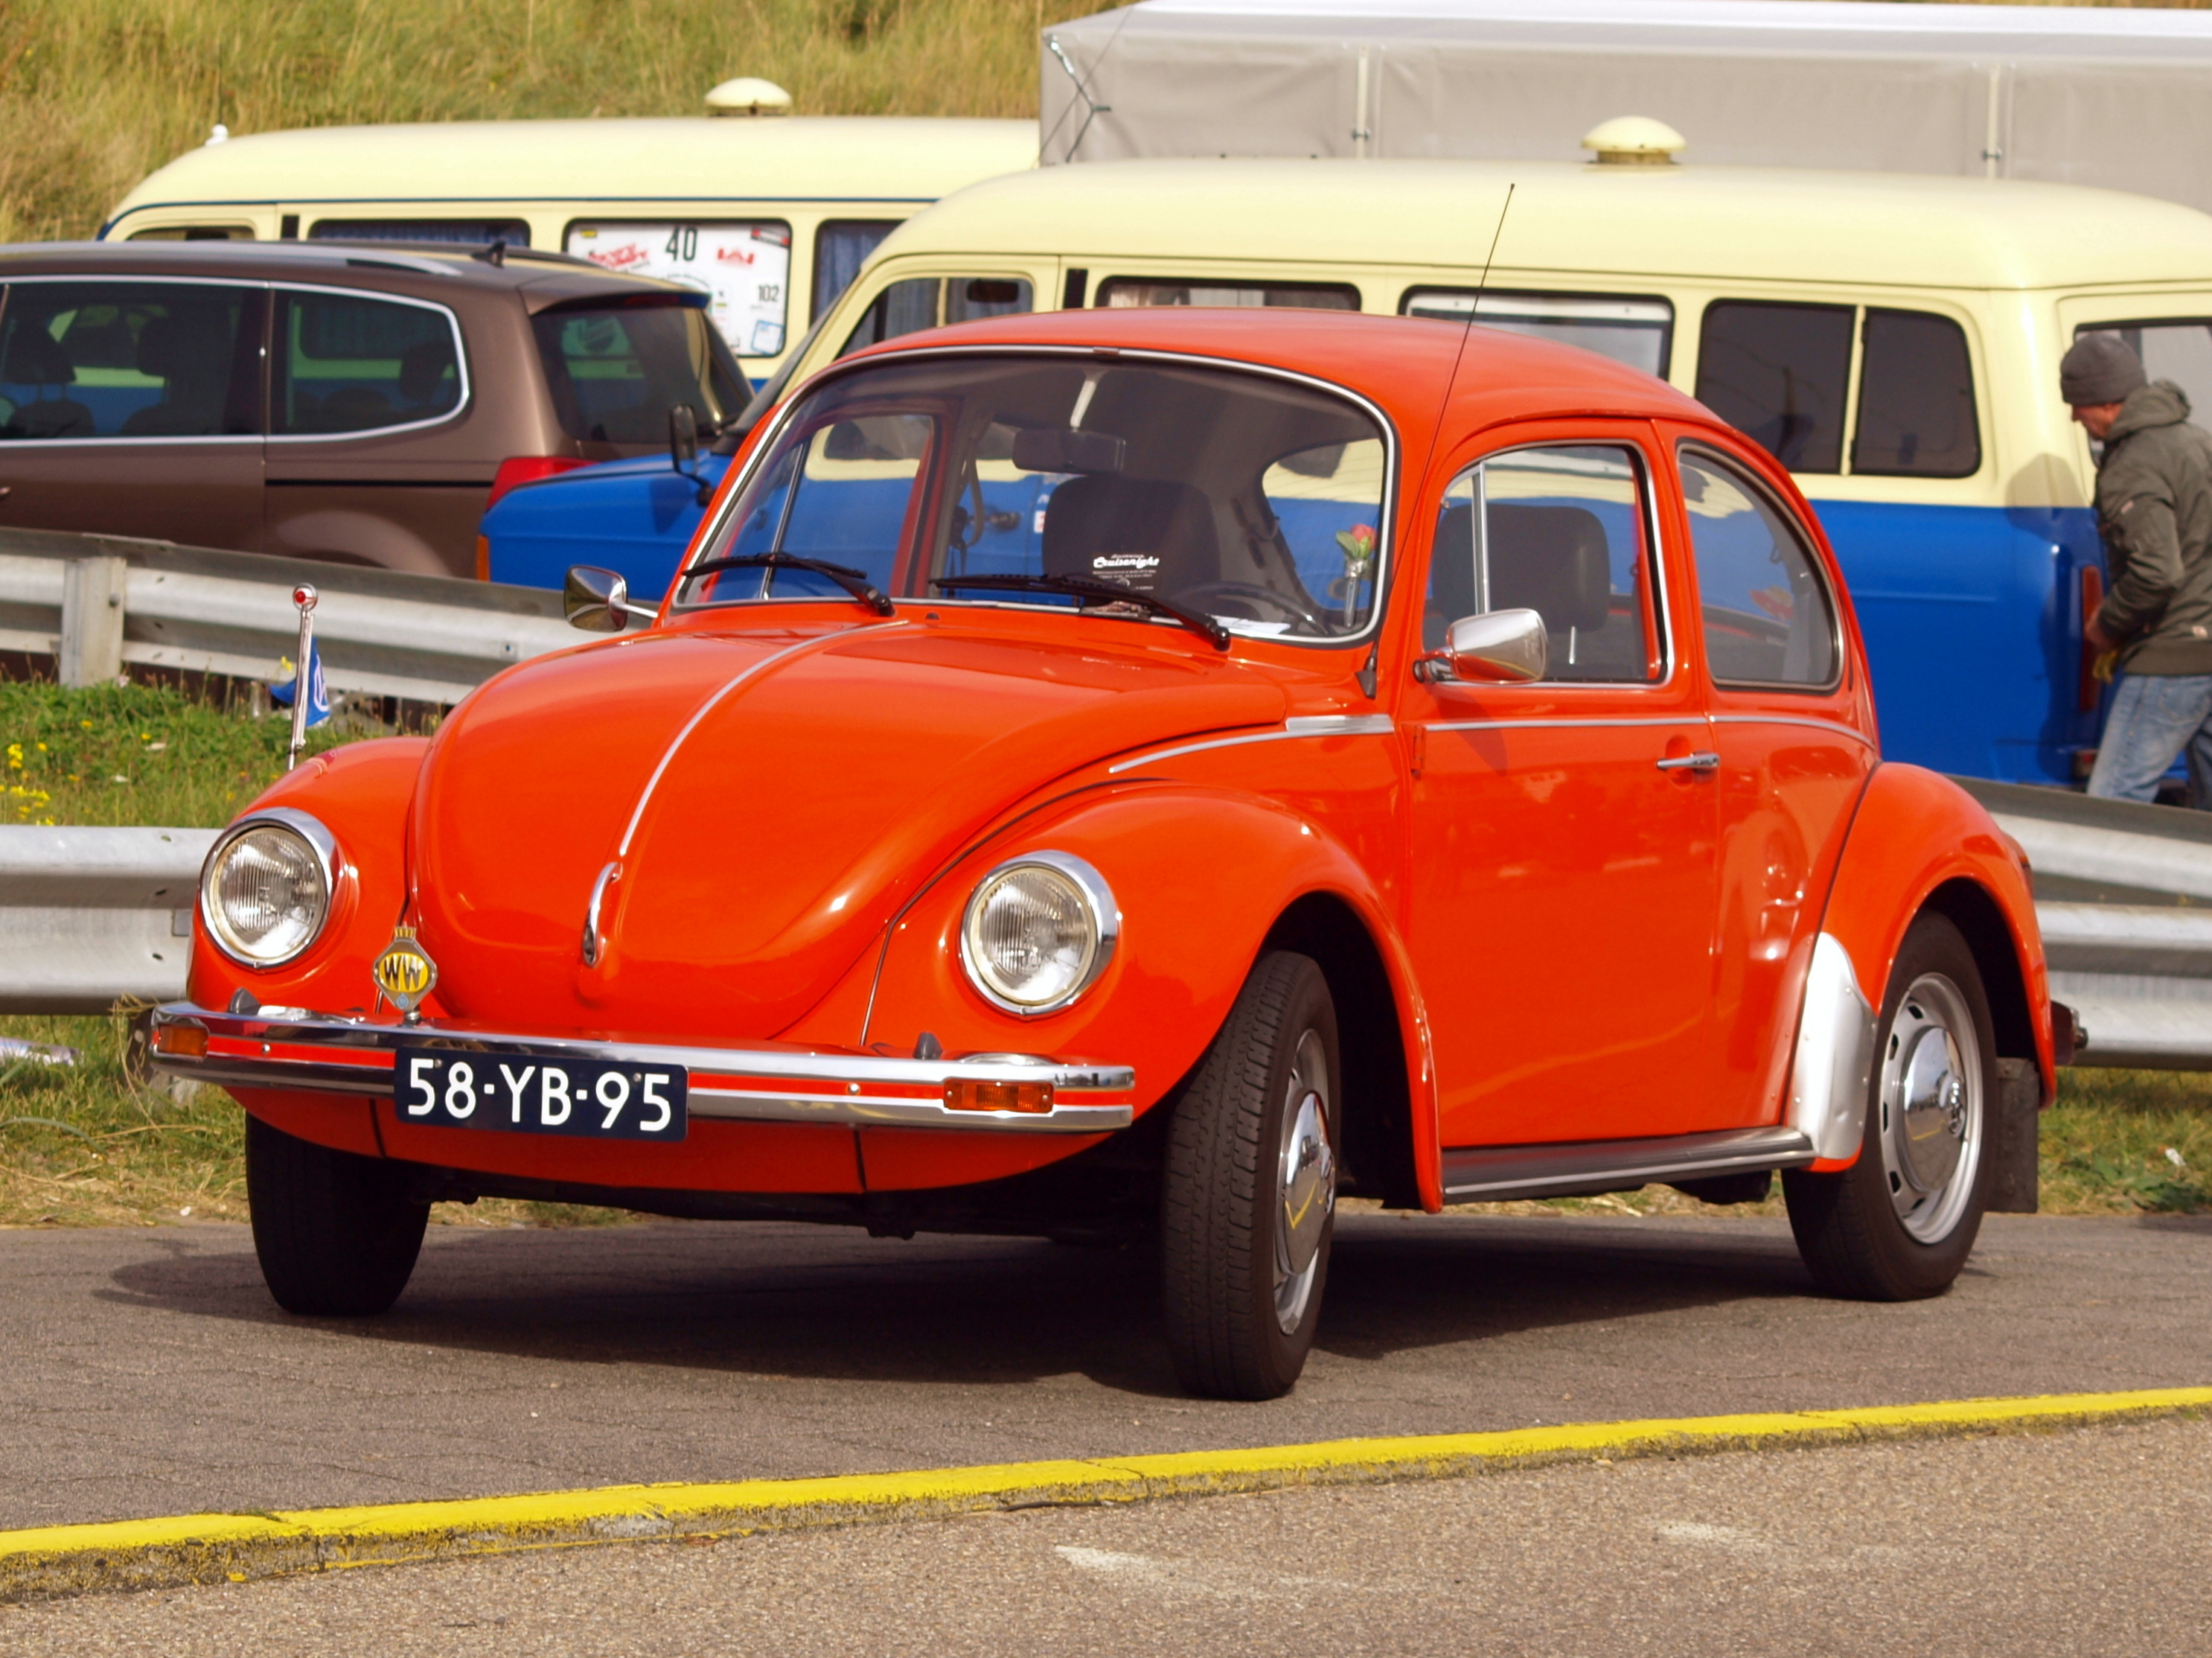 File:1975 Volkswagen Beetle.JPG - Wikimedia Commons